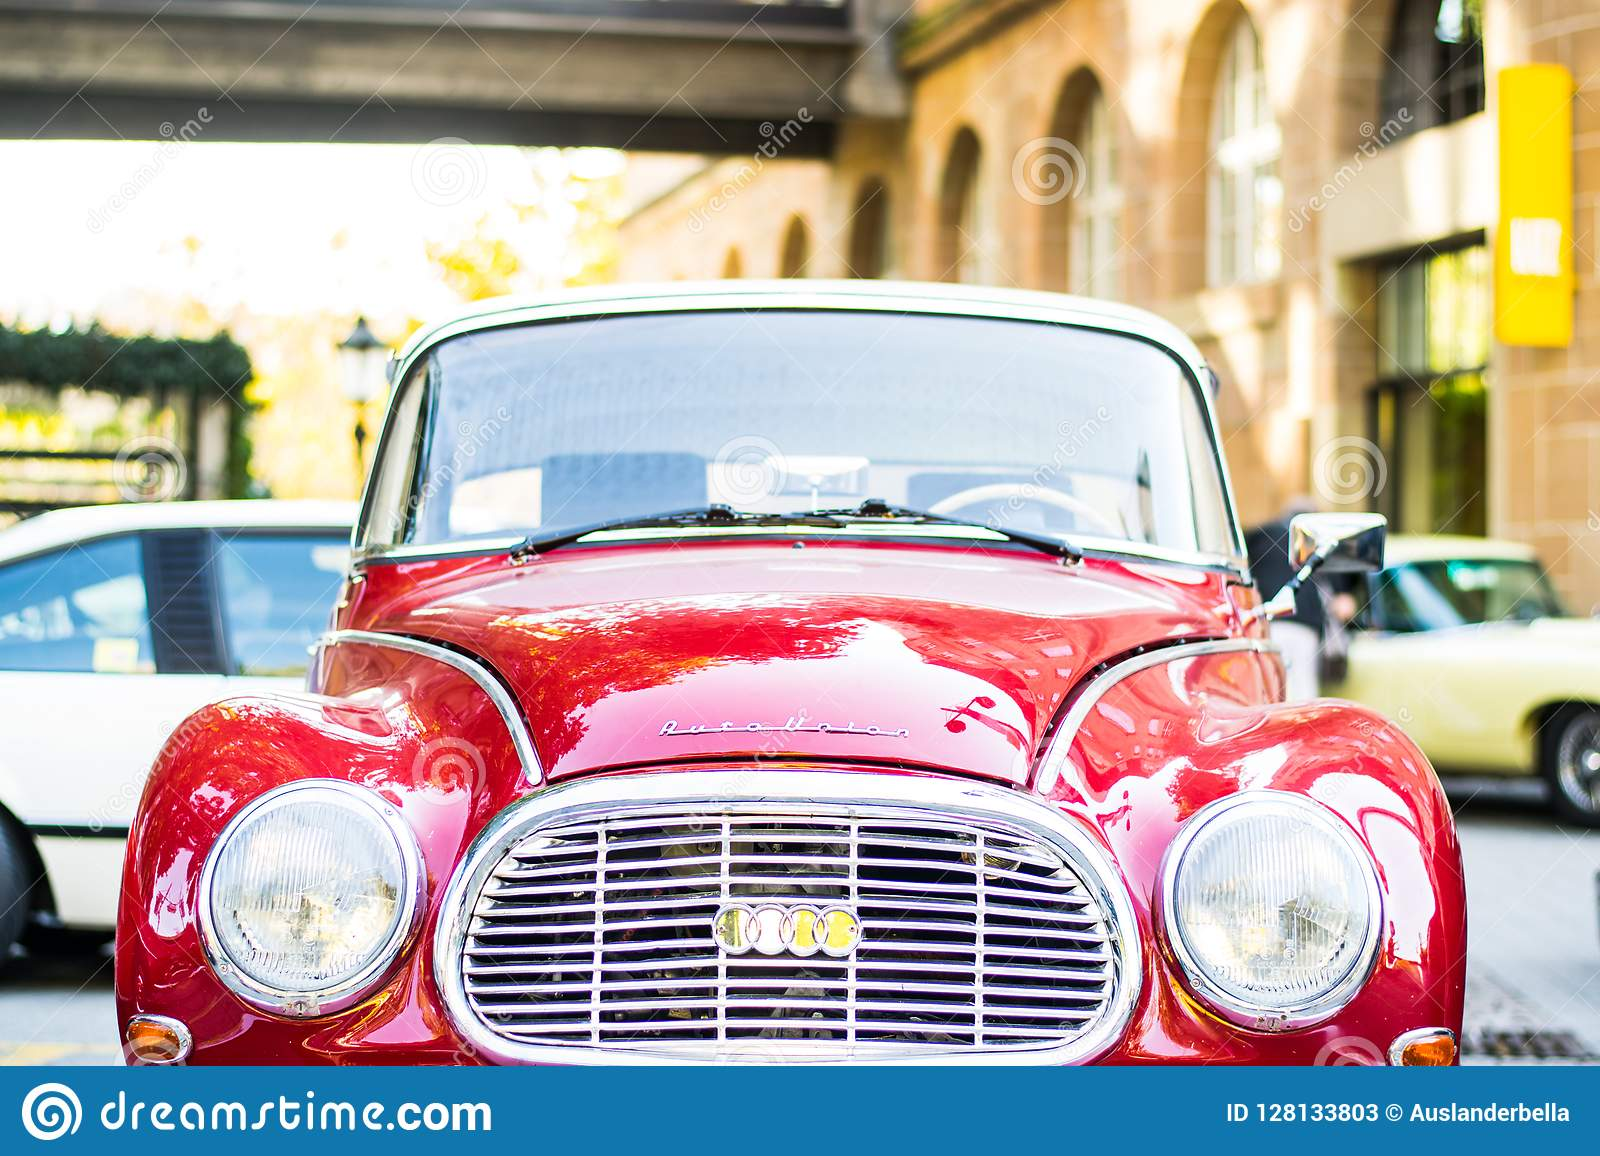 European Classic Cars - Old Timer Audi On The Street Editorial Stock